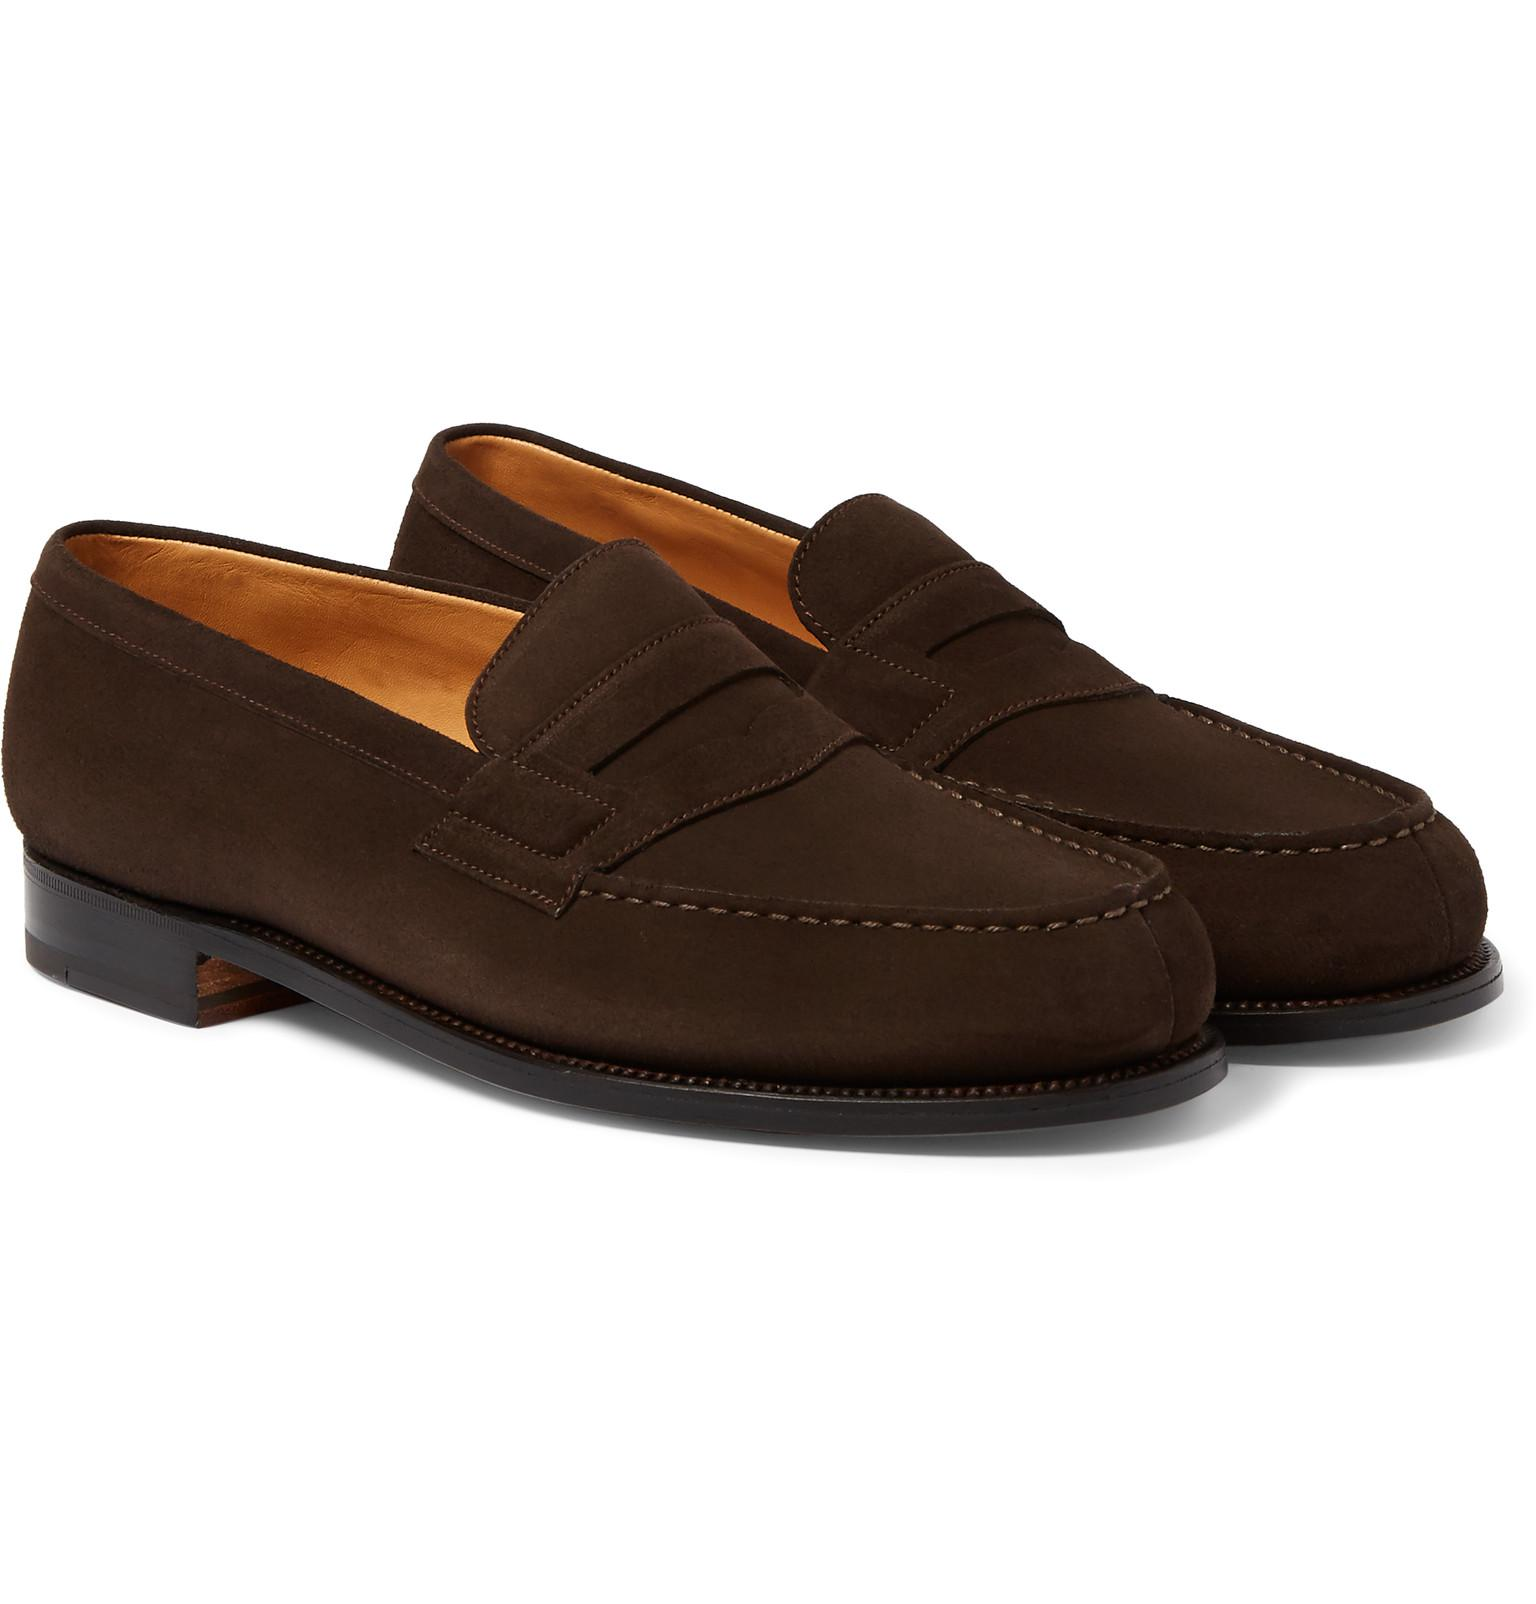 180 The Moccasin Grained-leather Loafers - BrownJ.M. Weston nMLrn